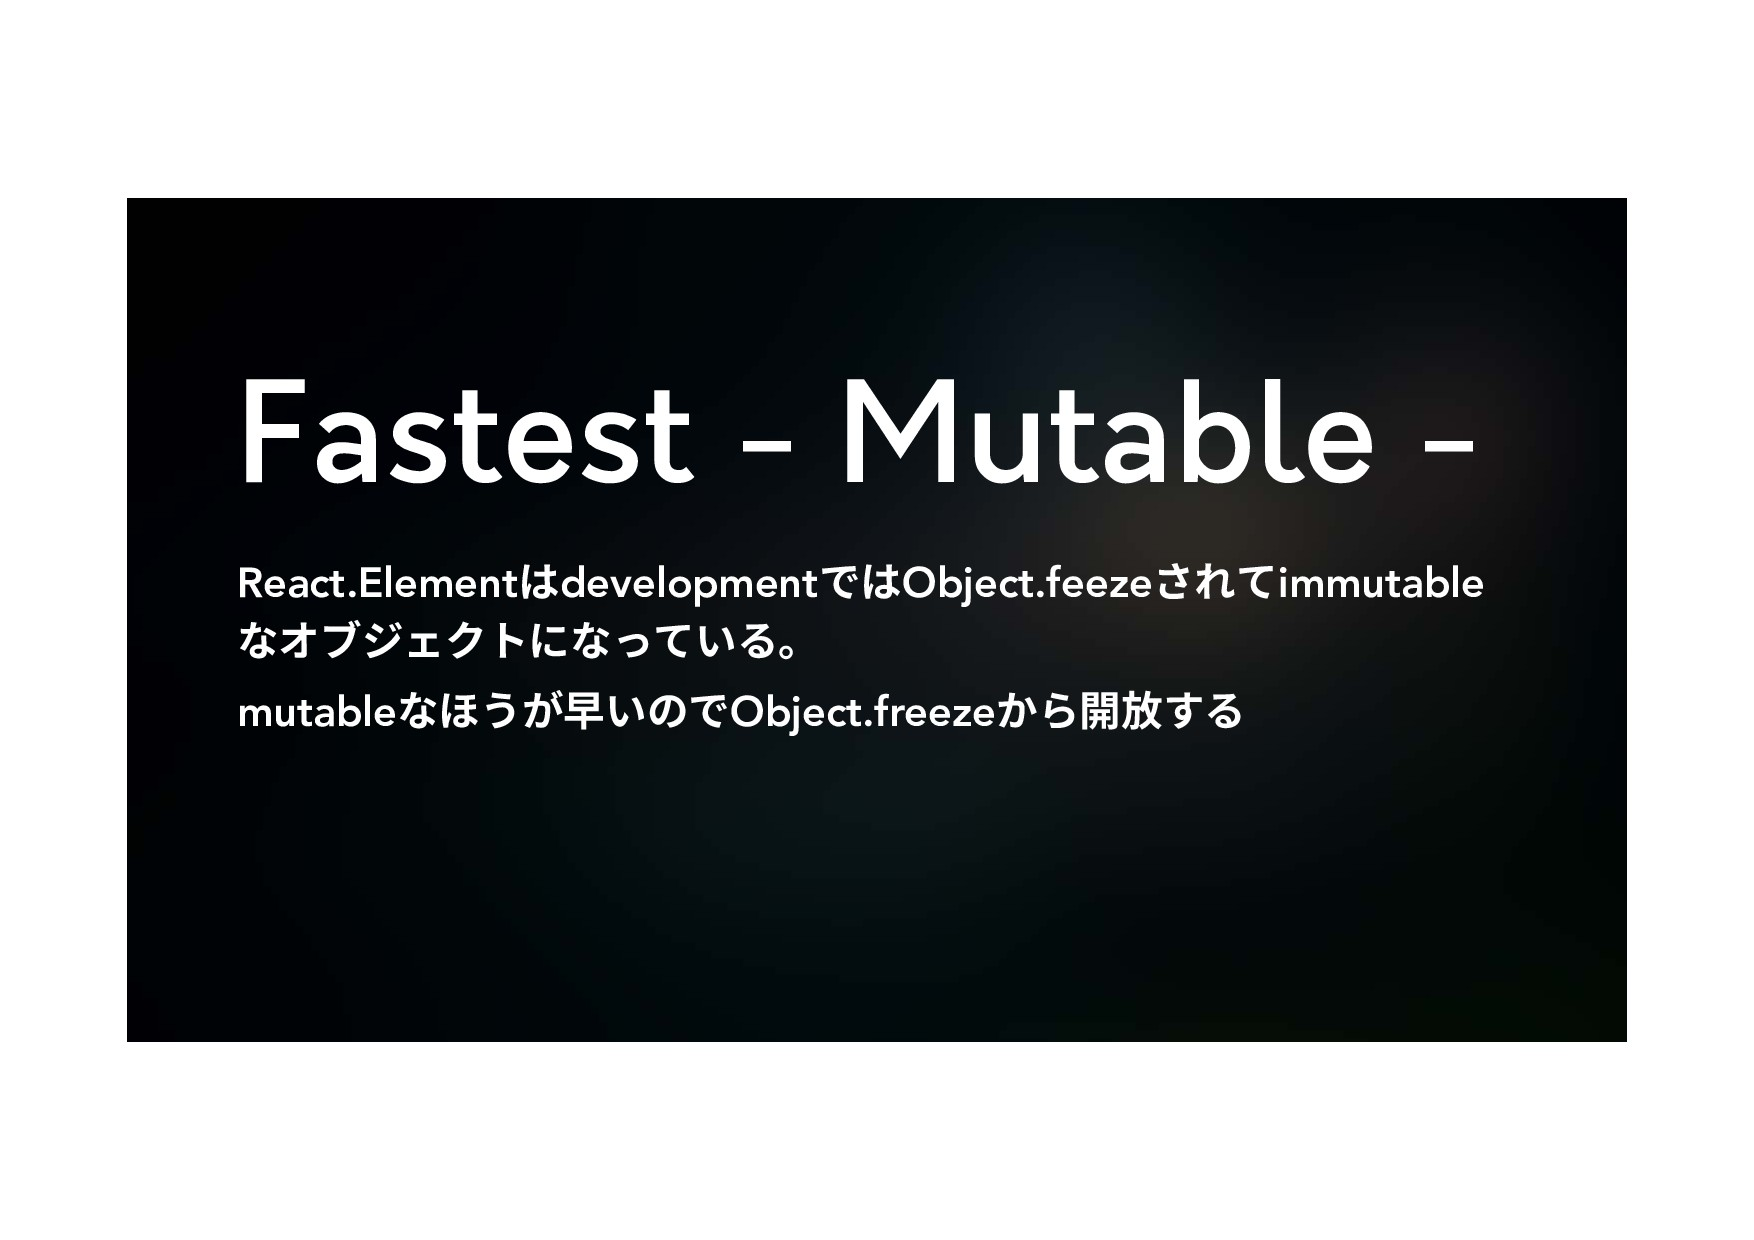 Fastest - Mutable - React.Elementכdevelopmentד...